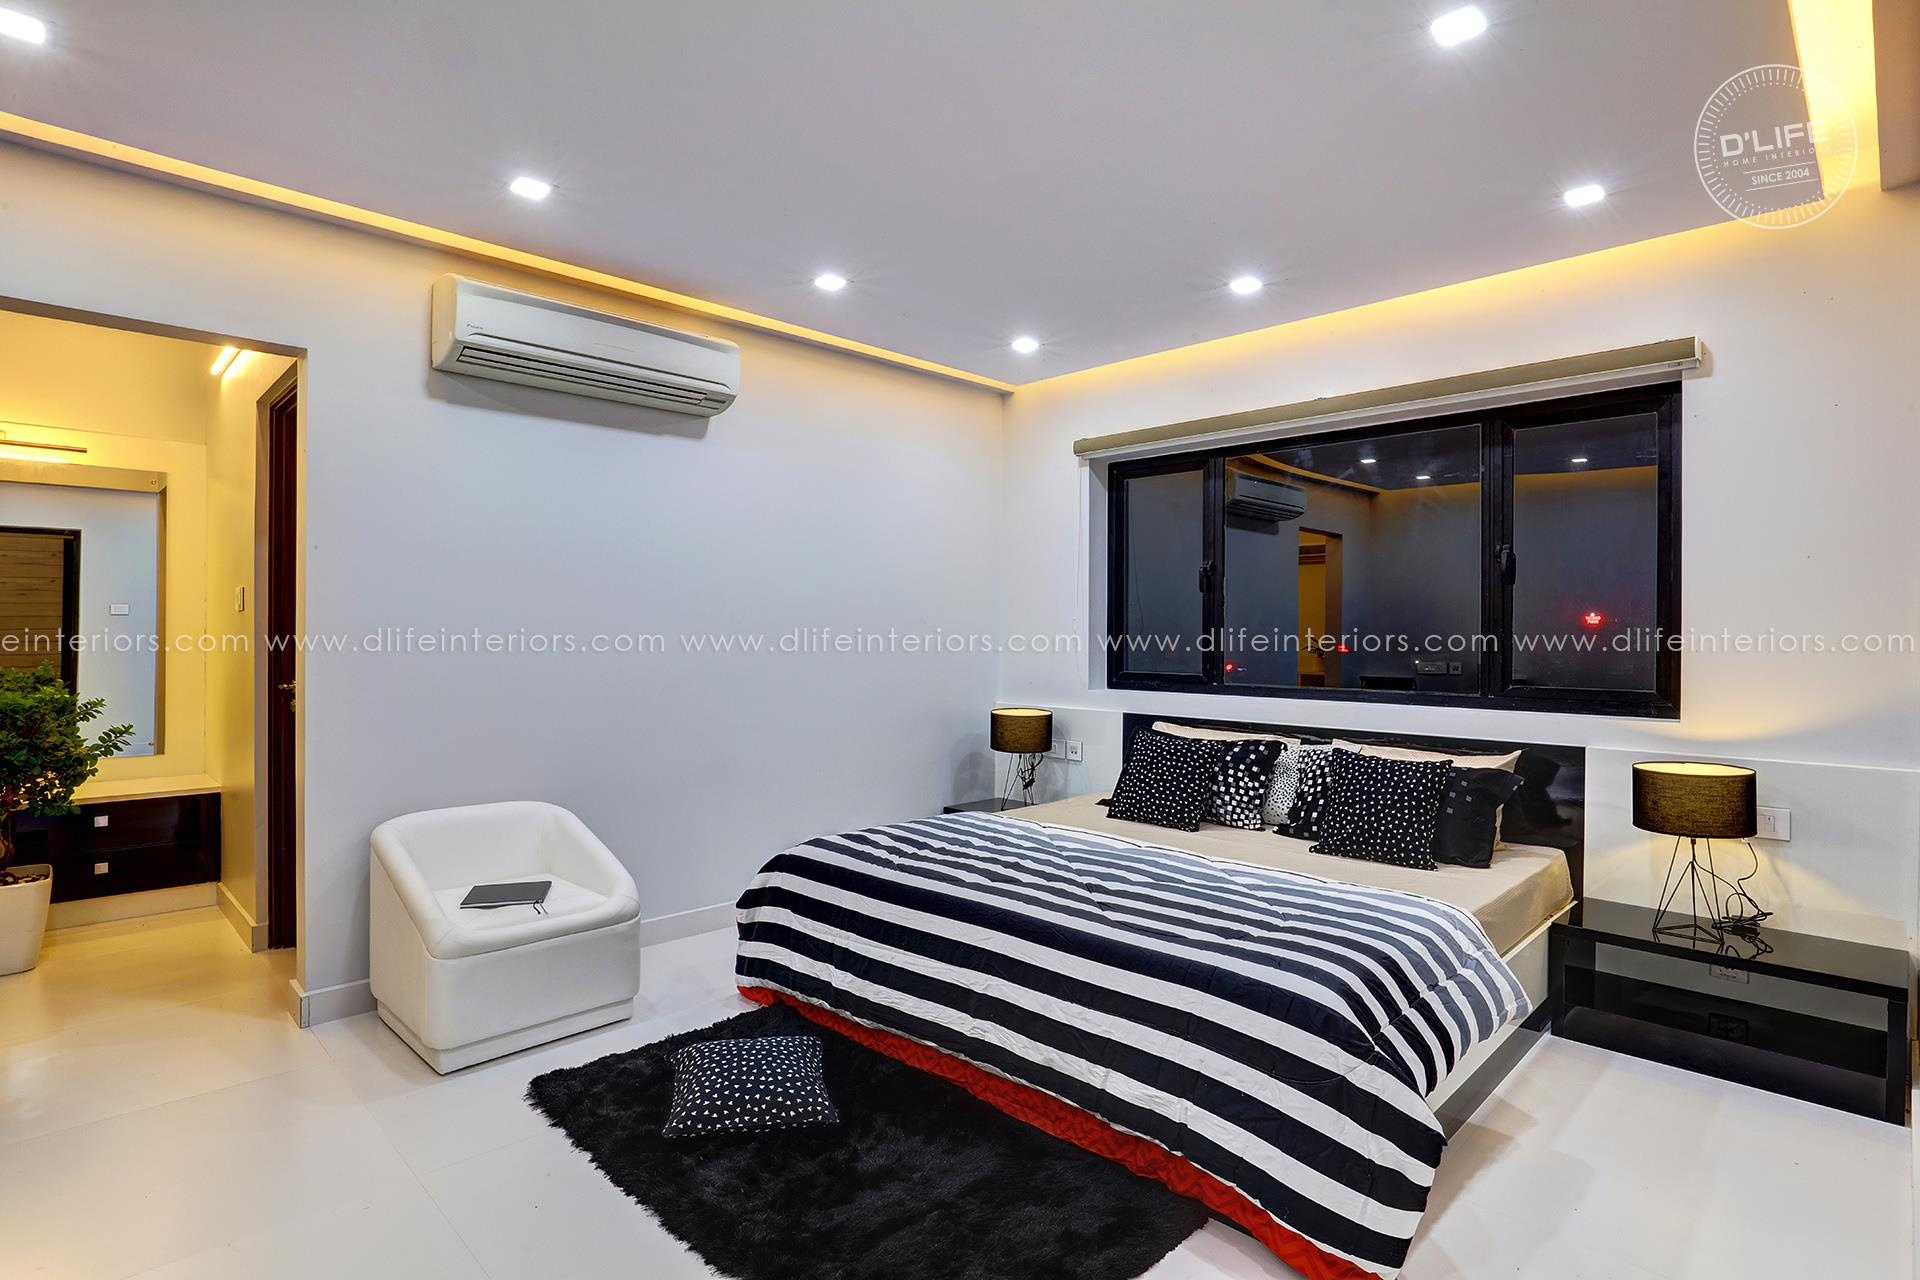 Which Is The Best Interior Designers Company For Living